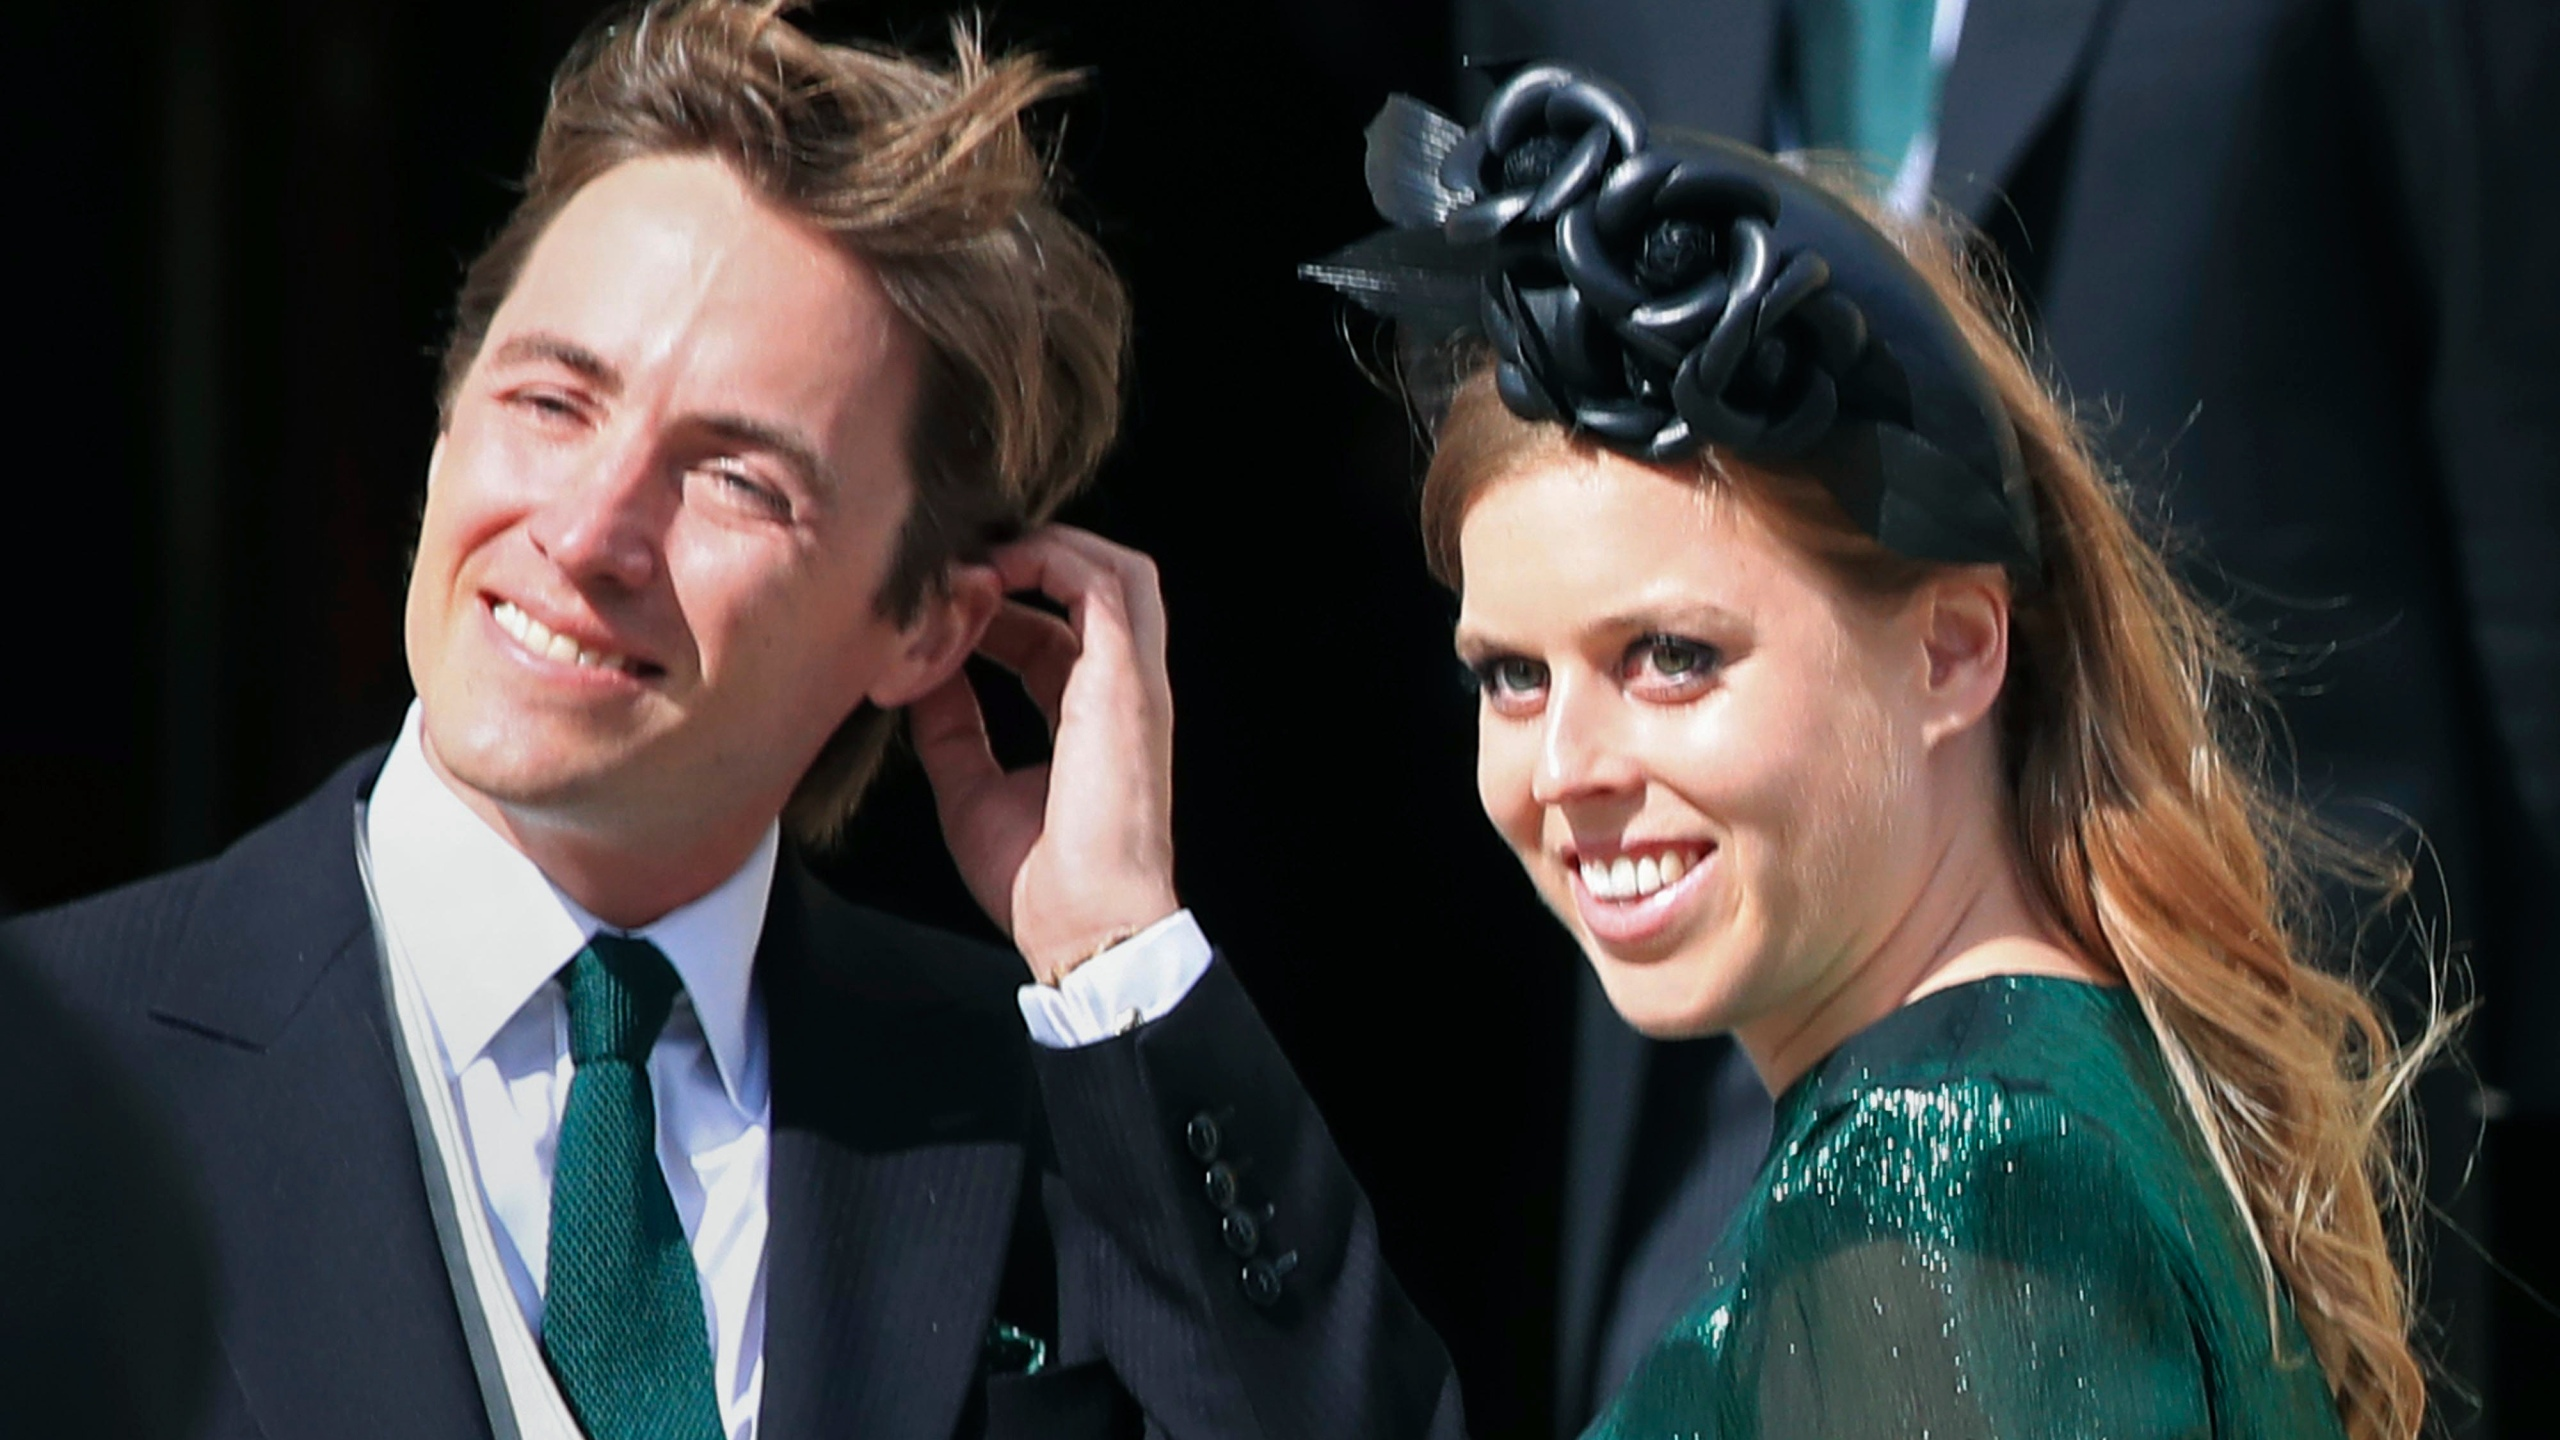 """FILE - In this Aug. 31, 2019 file photo, Princess Beatrice and her then fiance Edoardo Mapelli Mozzi attend the wedding of Ellie Goulding and Caspar Jopling, in York, England. Buckinghan Palace said Wednesday, May 19, 2021 that the 32-year-old granddaughter of Queen Elizabeth II and husband Edoardo Mapelli Mozzi are due to have their first child in the autumn. It said """"both families are delighted with the news."""" Beatrice, who is the elder daughter of Prince Andrew and the former Sarah Ferguson, married property developer Mapello Mozzi in July 2020, at a small ceremony constrained by coronavirus restrictions. (Peter Byrne/PA via AP, File)"""